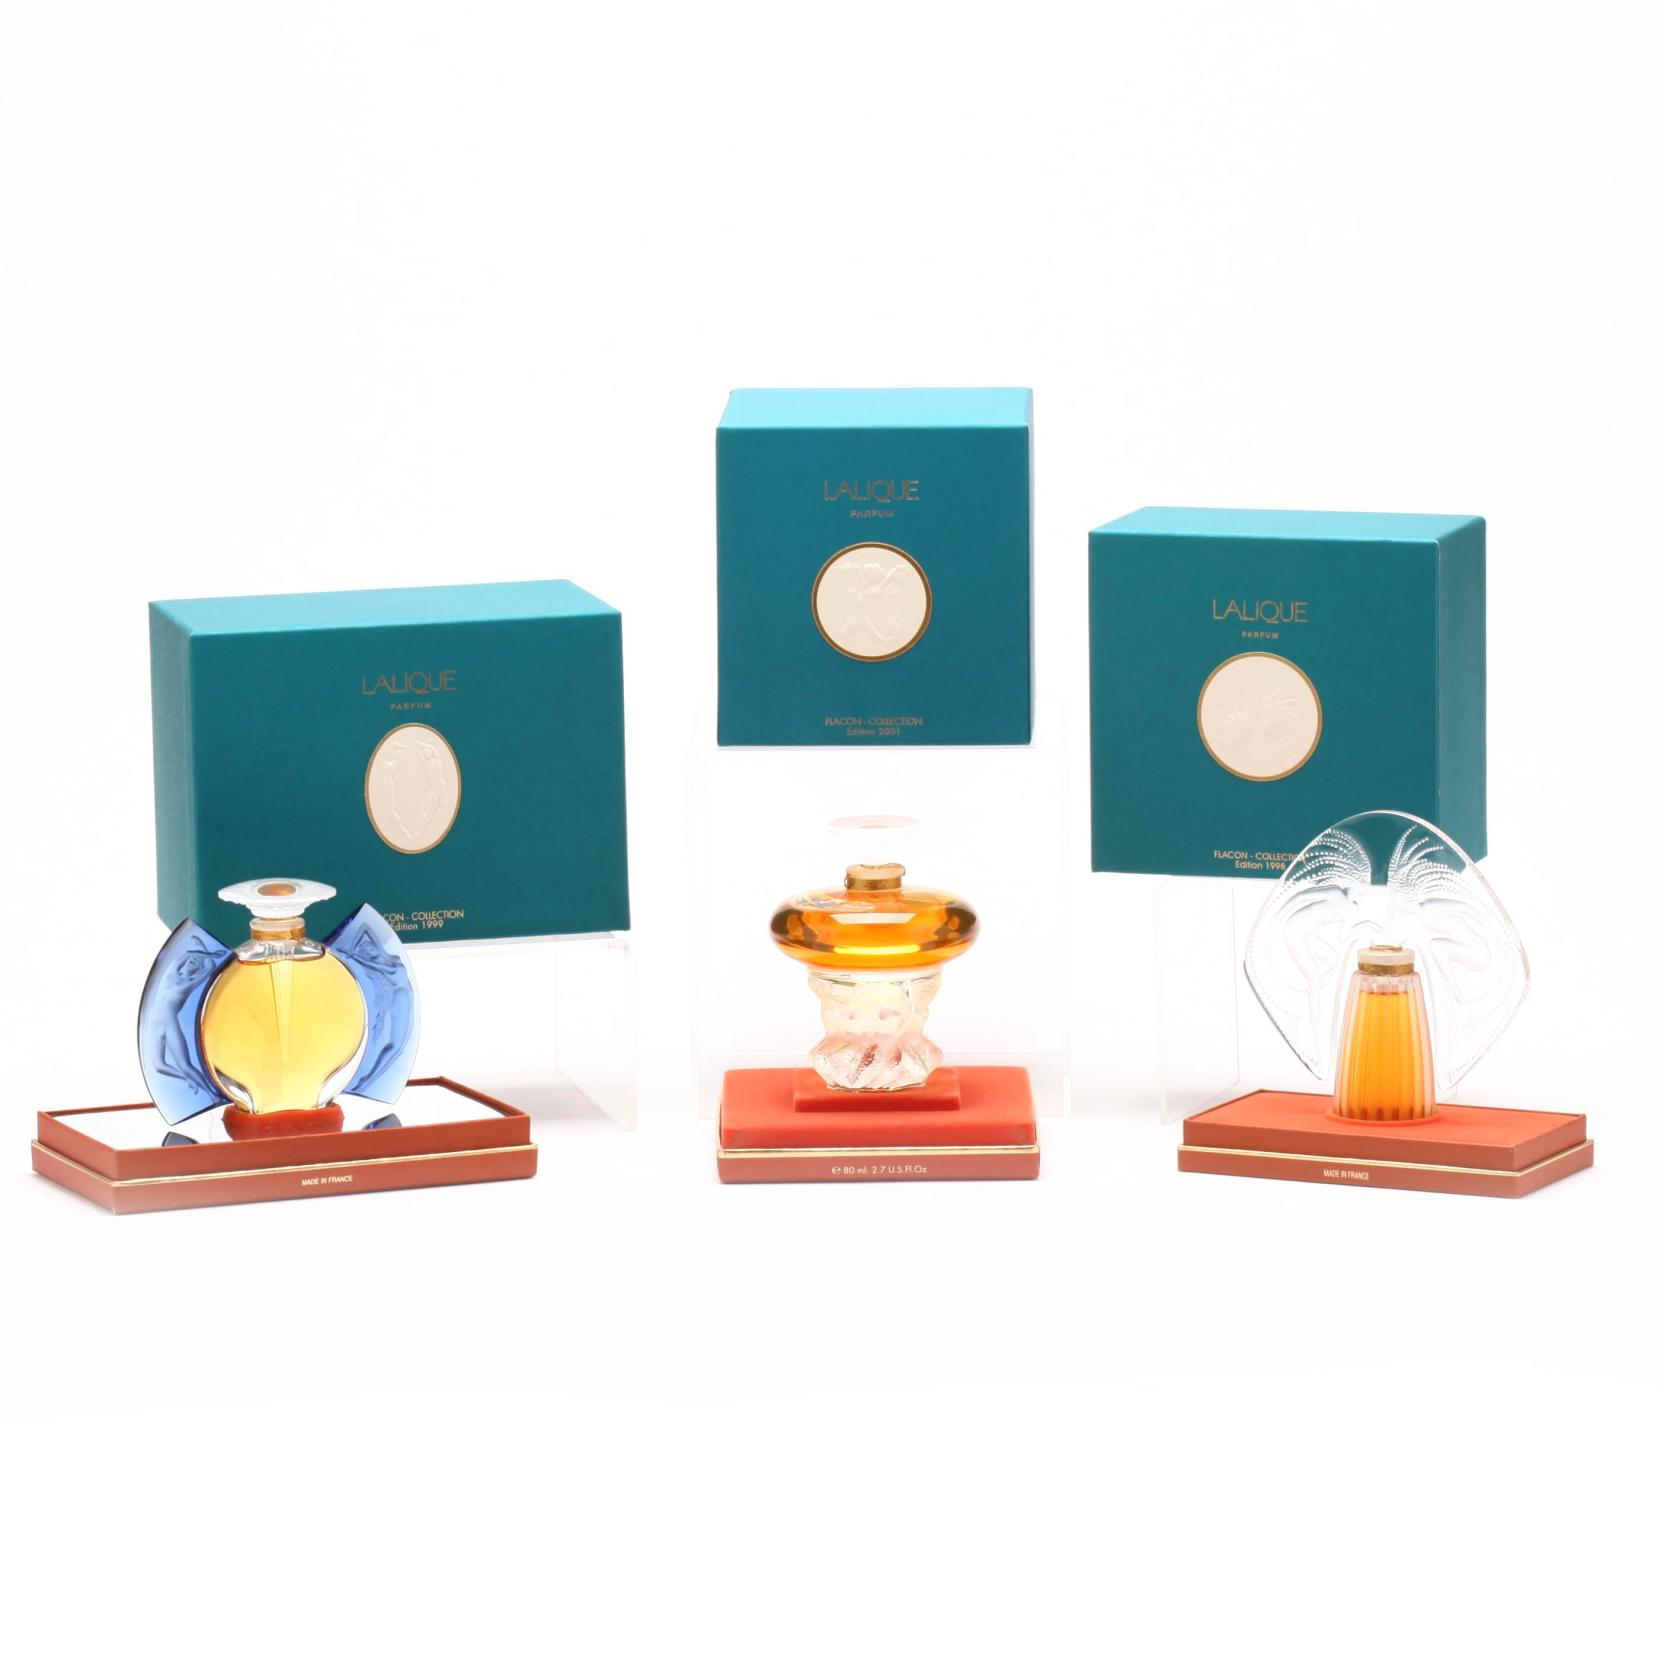 three-lalique-flacon-collection-limited-edition-scent-bottles